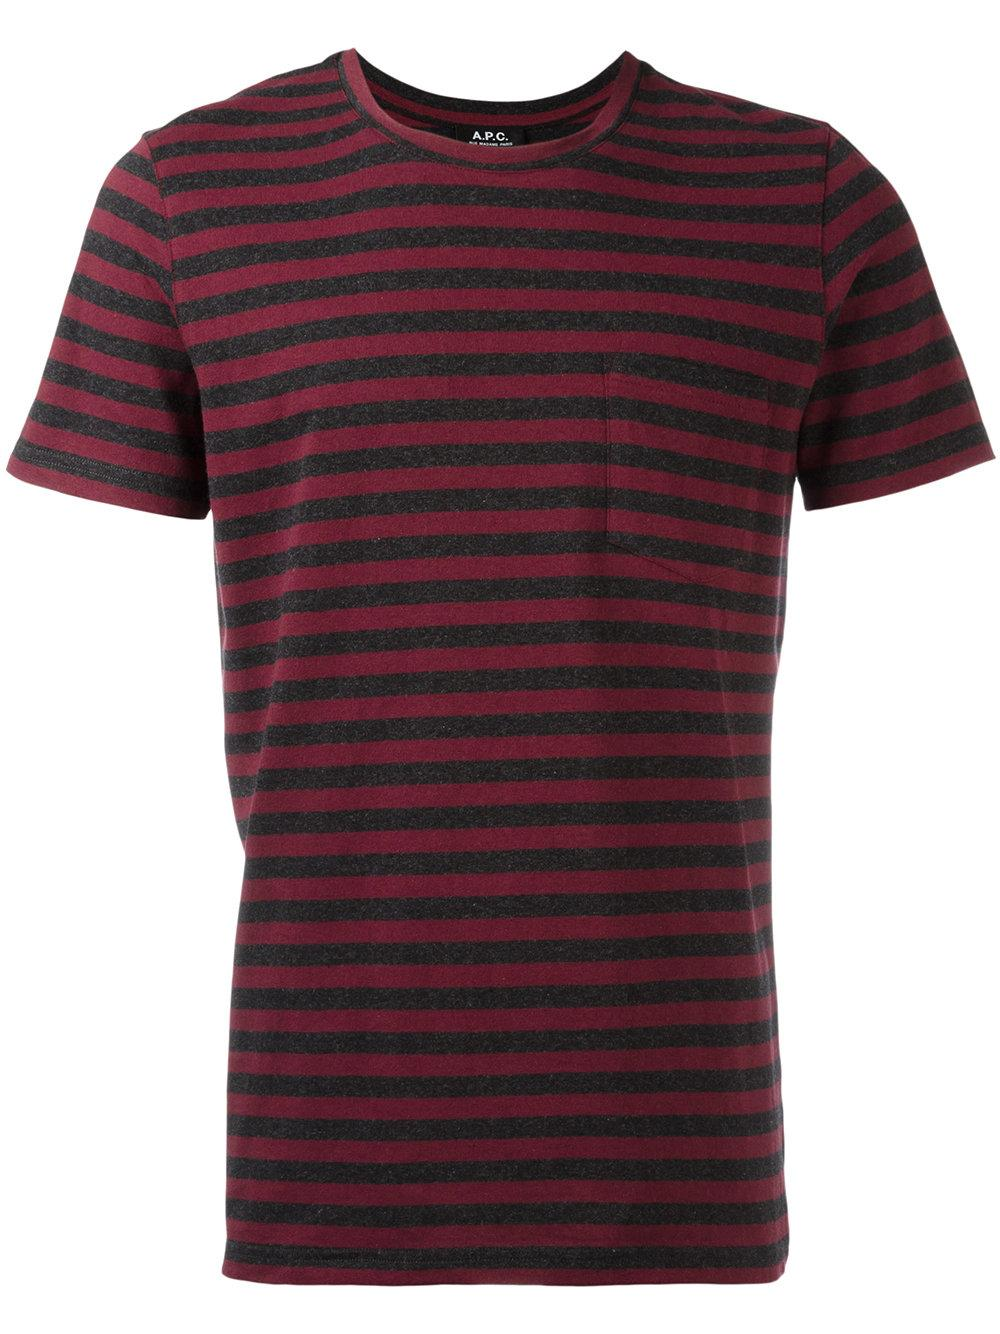 Lyst a p c striped pocket t shirt in gray for men for Grey striped t shirt